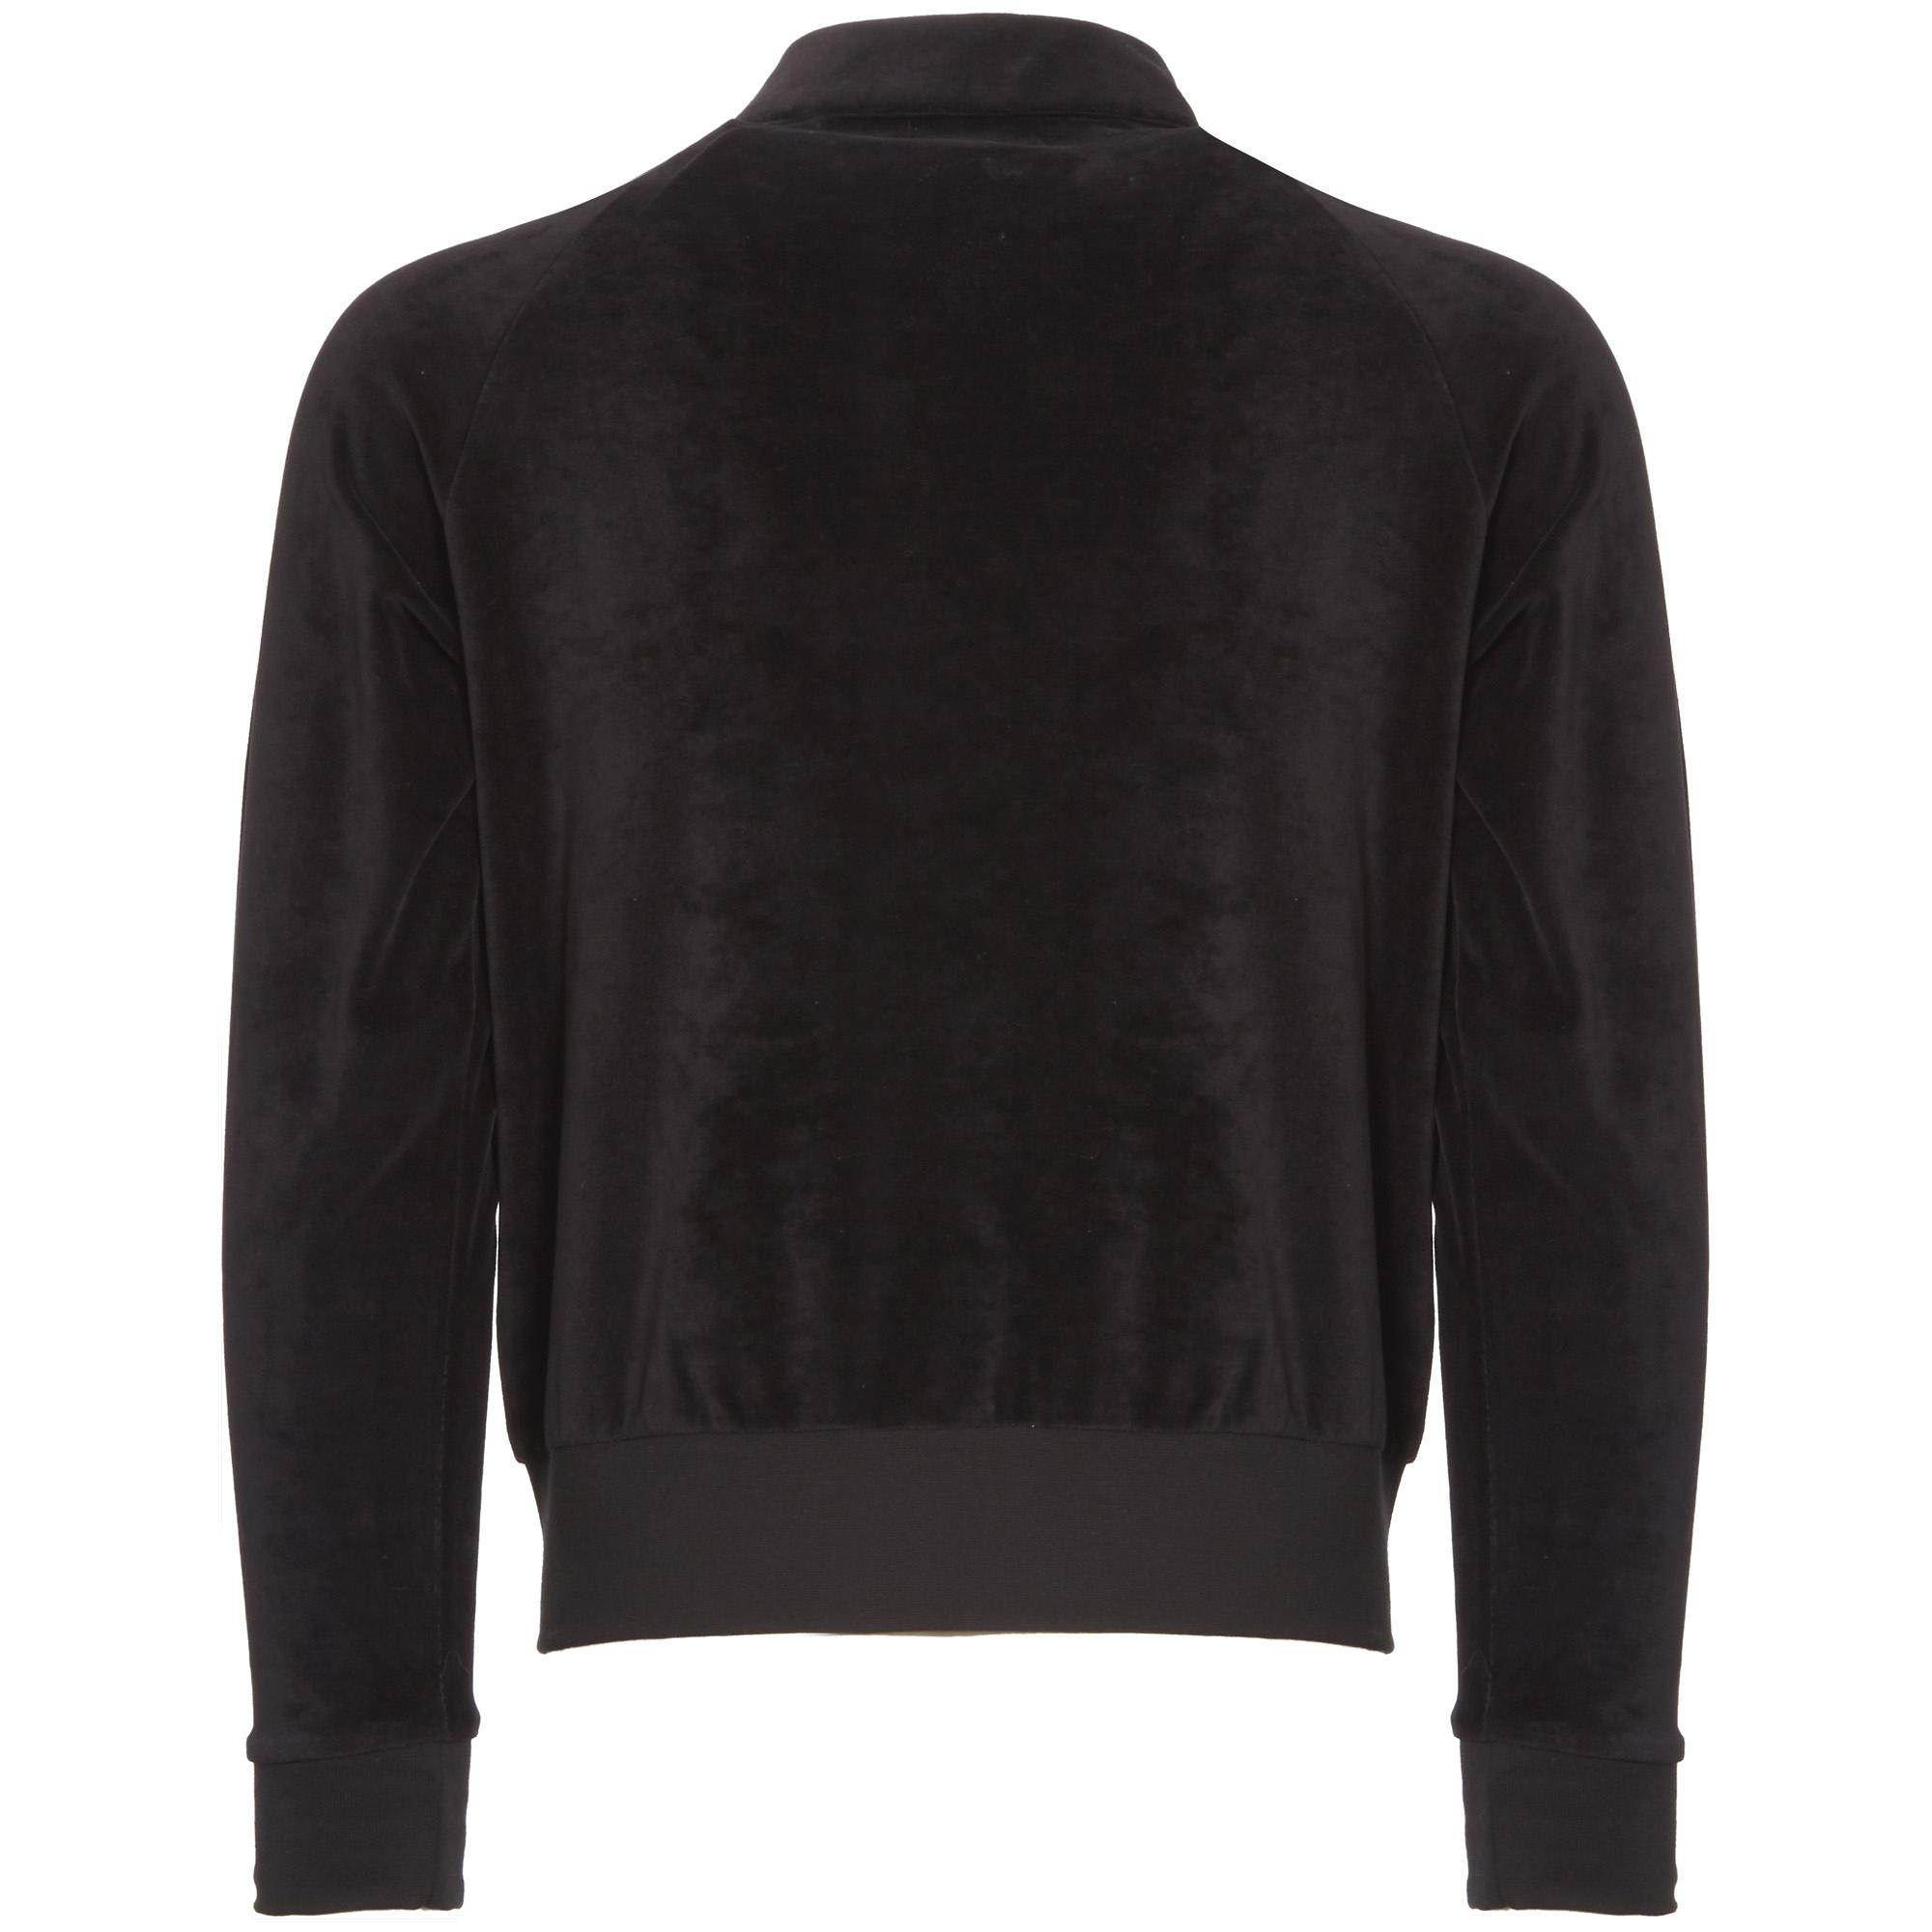 Fred Perry X Miles Kane Velour Track Top In Black For Men Lyst Jaket Tracktop Rsch Premium Gallery